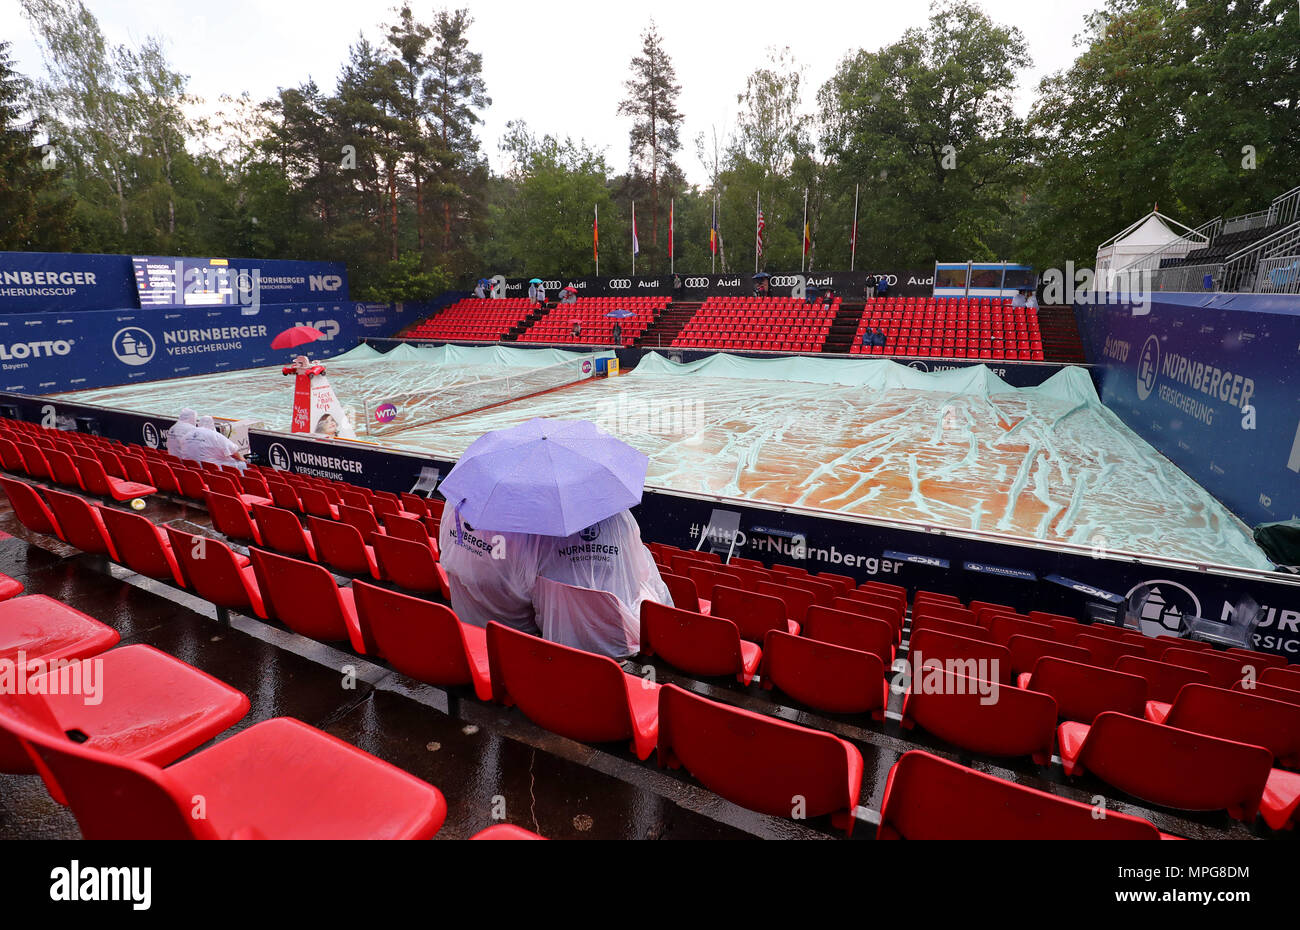 23 May 2018, Germany, Nuremberg: Tennis, WTA-Tour, women's singles. Two visitors sitting in the stands with rain ponchos and umbrellas during a rain interruption. Photo: Daniel Karmann/dpa - Stock Image